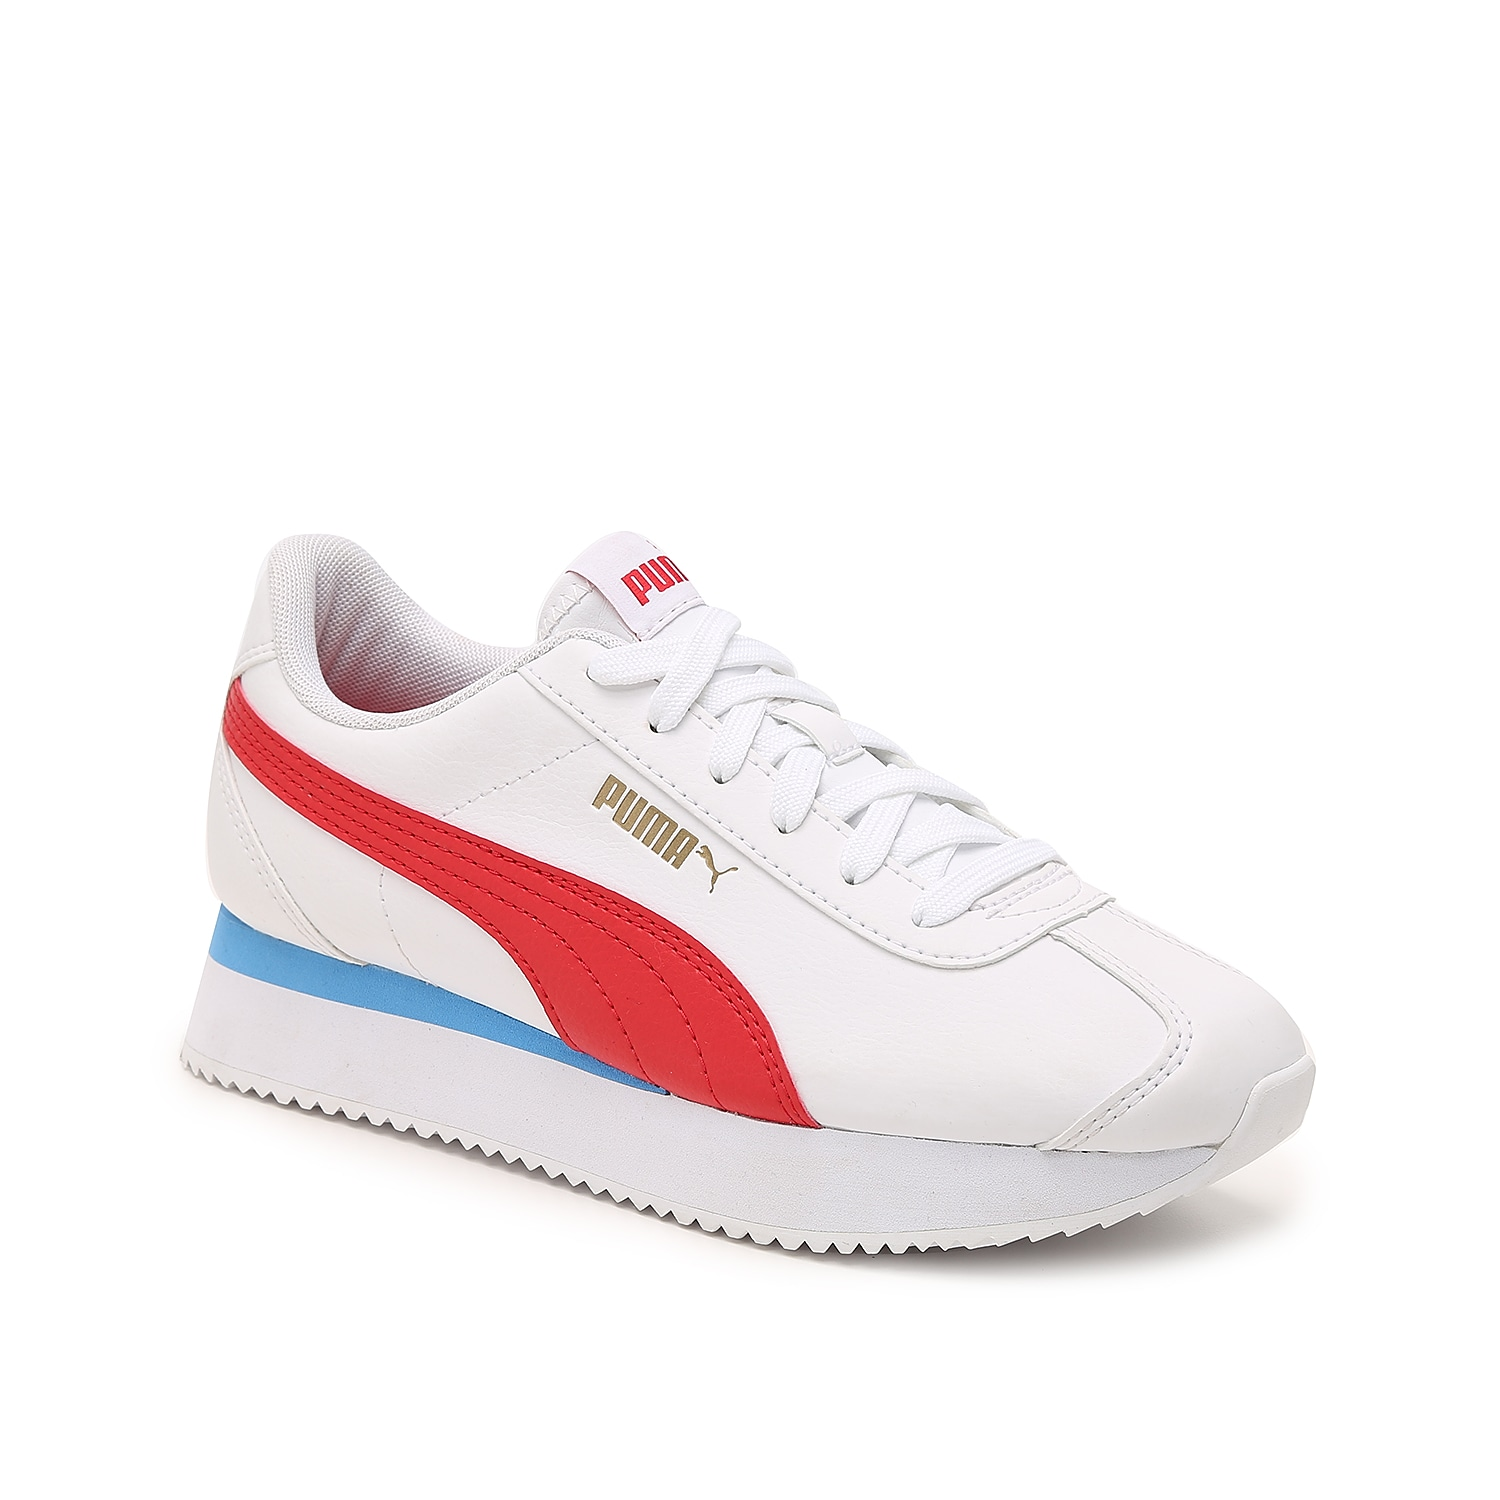 The Turino sneaker from Puma will be perfect for your casual shoe collection. This low-top jogger features a lightweight, retro-inspired design and will easily pair with your favorite athleisure essentials.